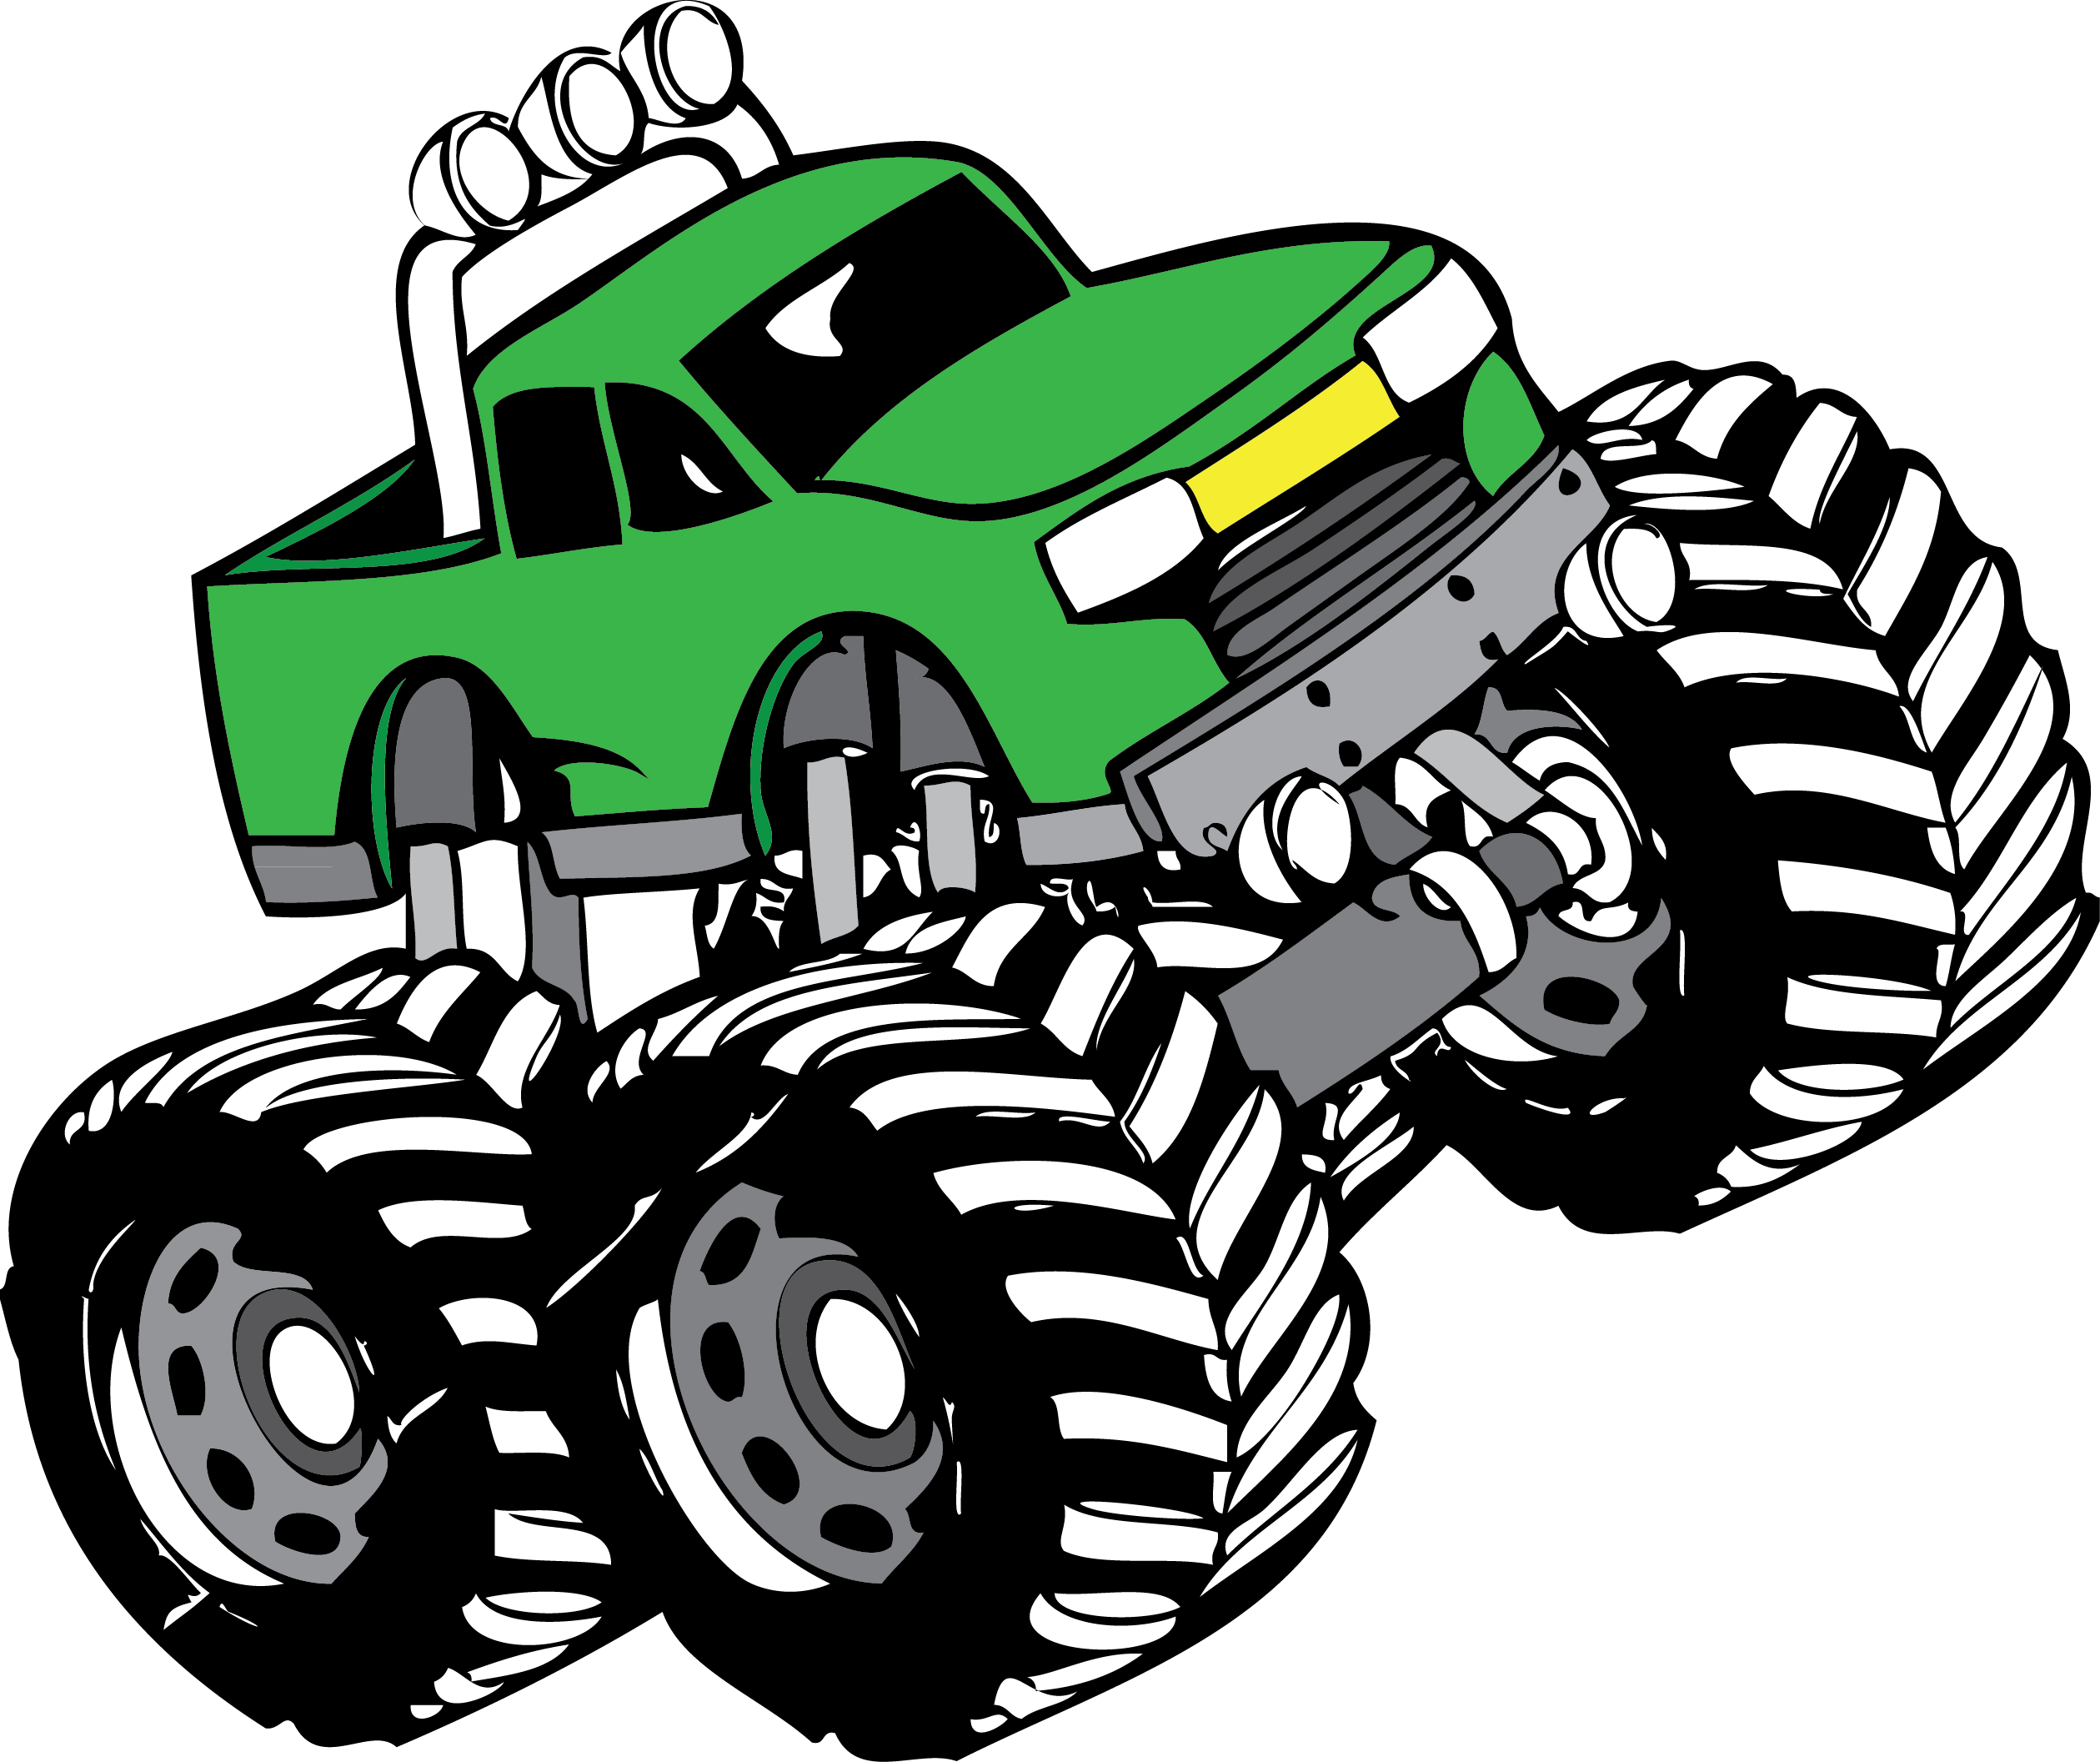 Monster truck clip art. Wheels clipart png black and white download